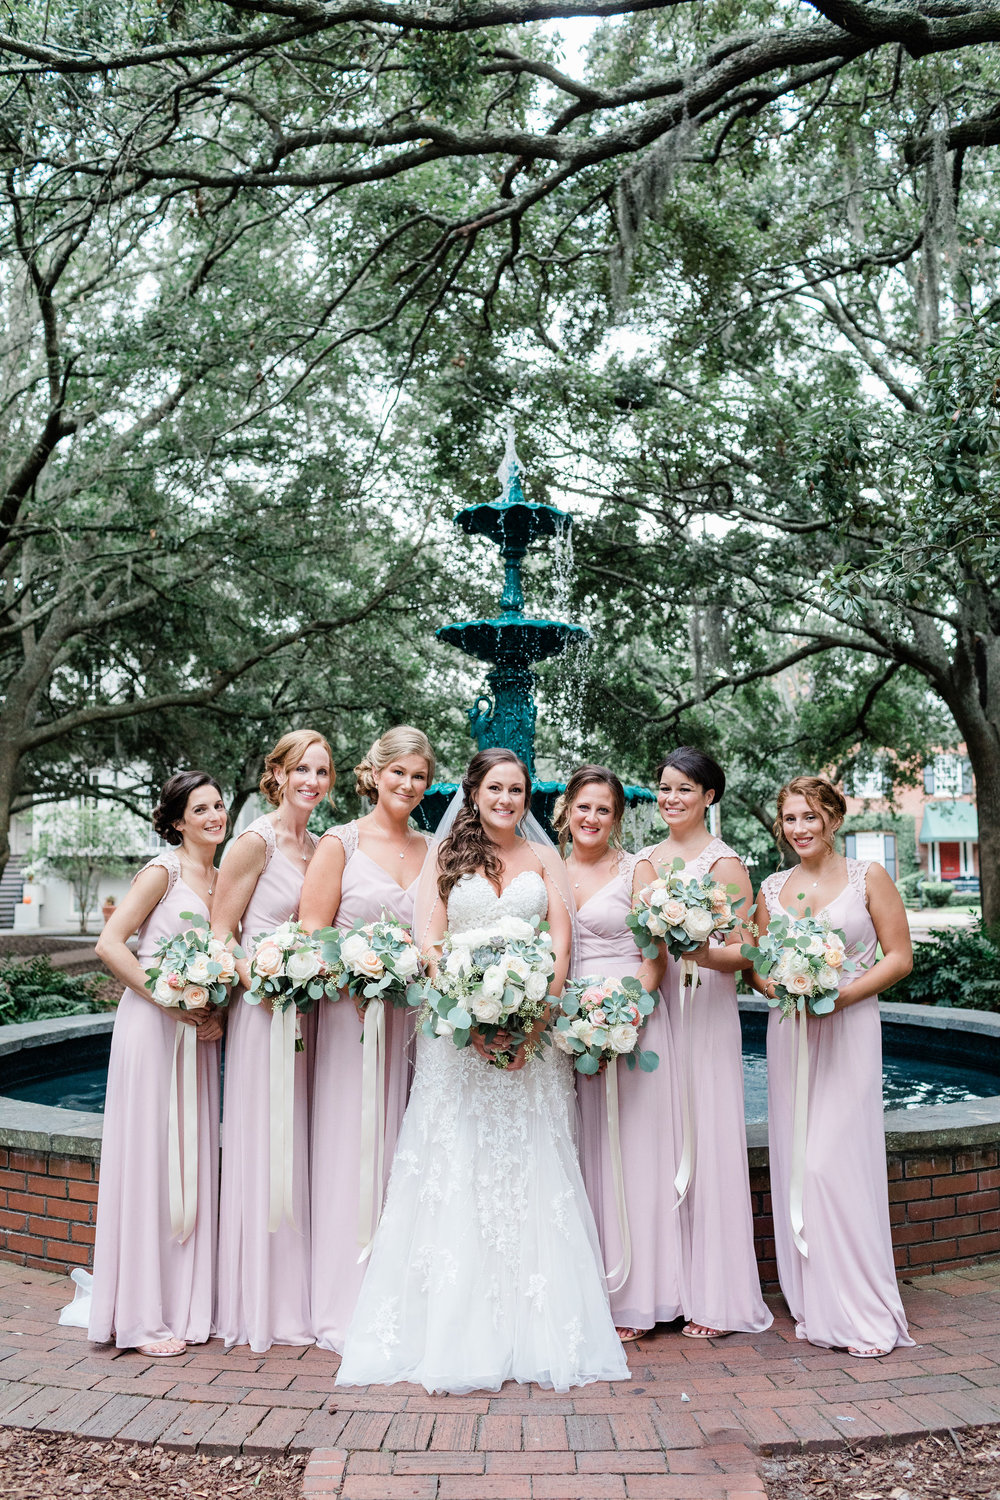 Danielle + Paul's Lafayette Square Wedding, Historic Savannah Wedding | Savannah Wedding Photographer | Apt. B Photography